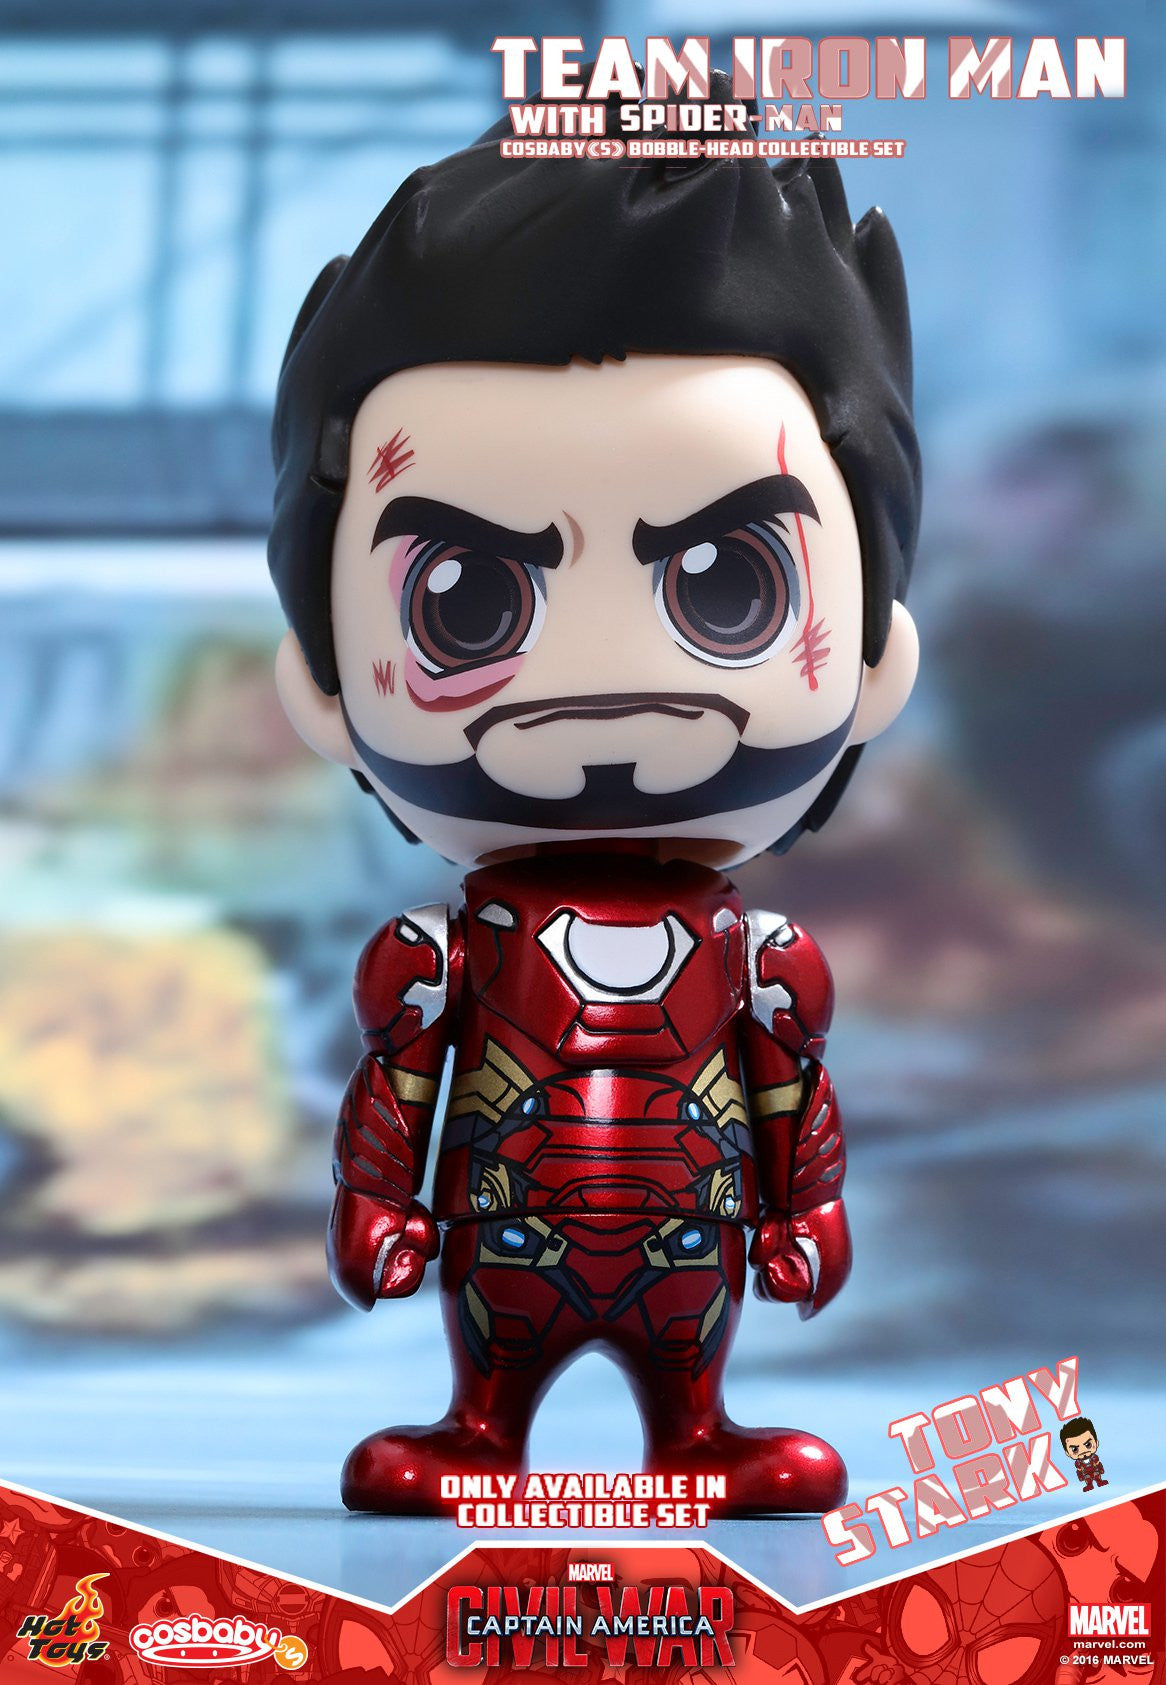 Hot Toys - COSB272 - Captain America Civil War – Team Iron Man With Spider-Man Cosbaby (S) Bobble-Head Collectible Set - Marvelous Toys - 2